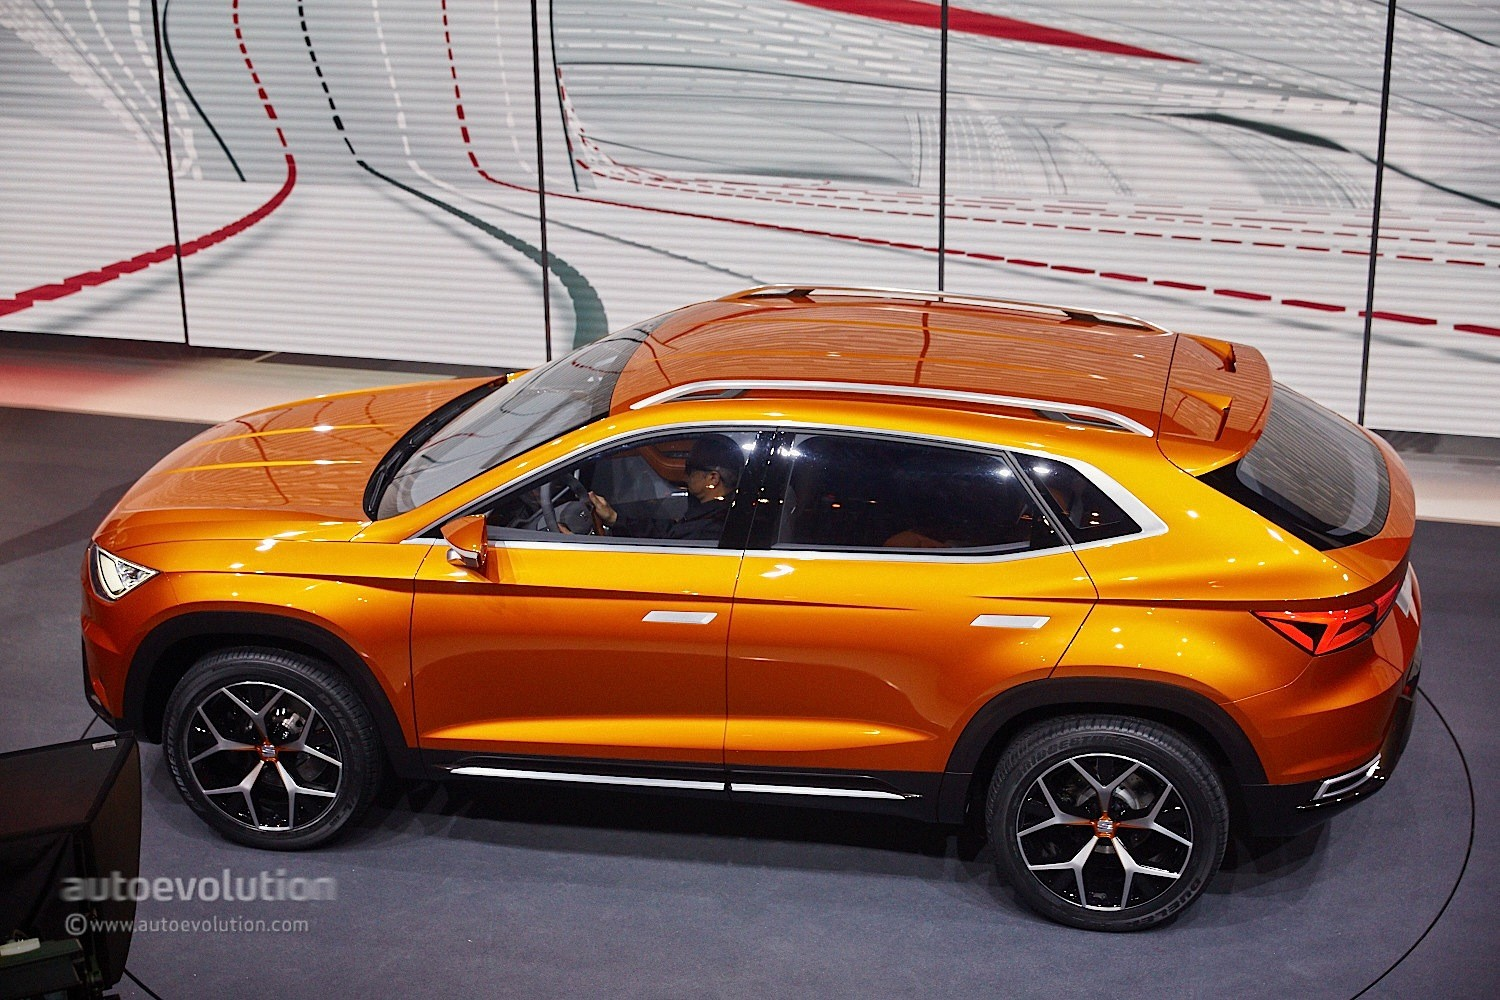 SEAT Prostyle SUV Will Be the First of 4 New Models Coming Until